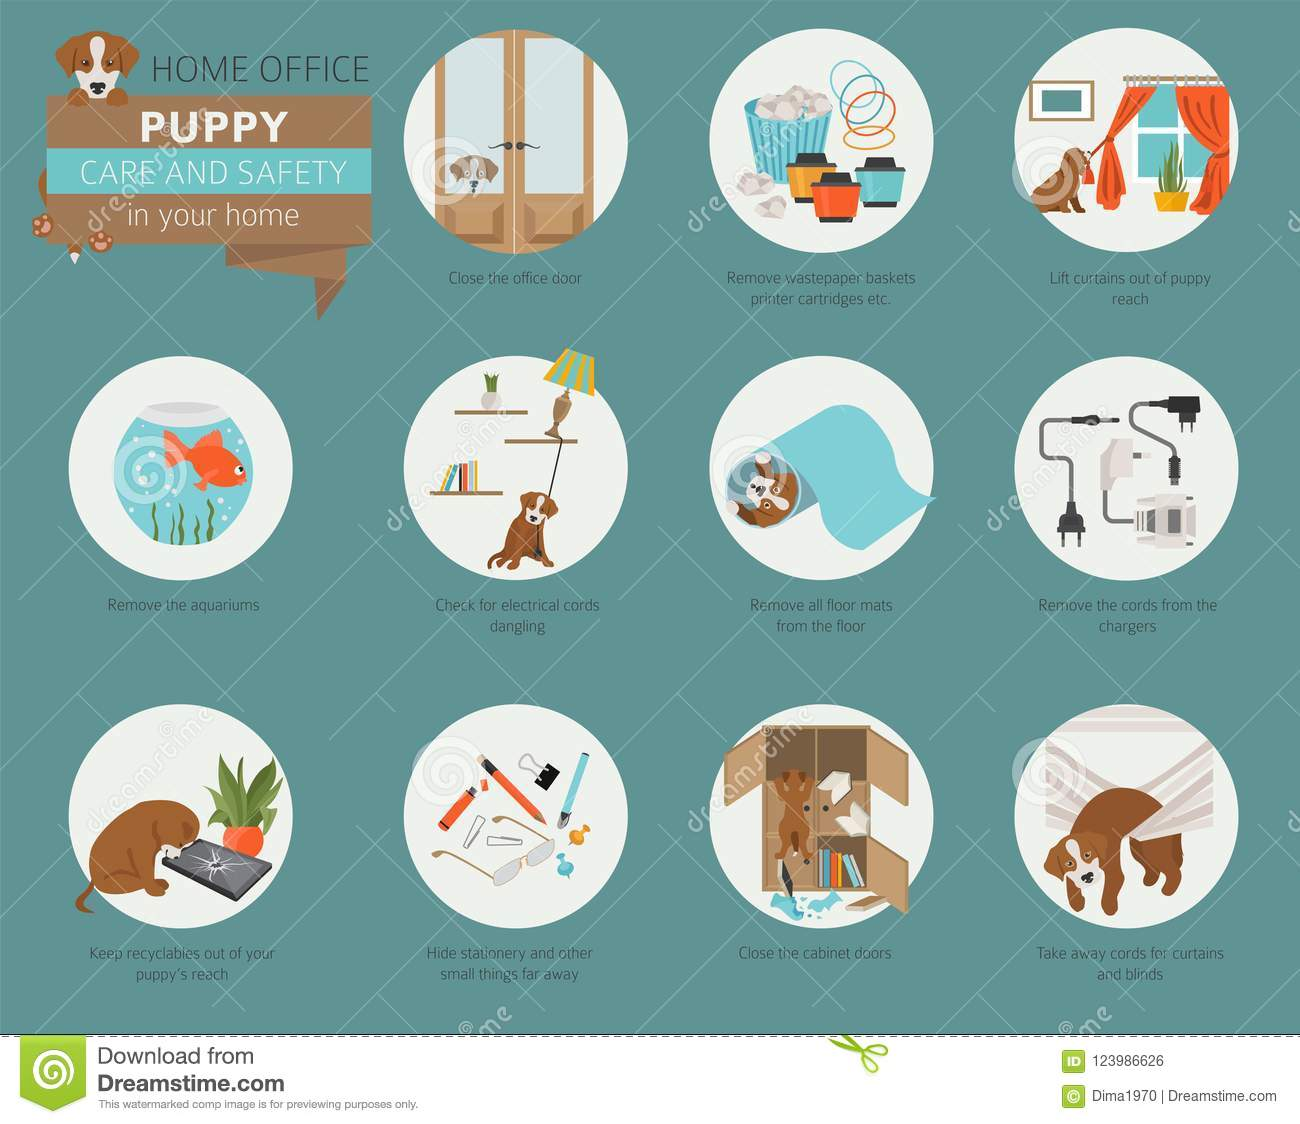 Puppy Care And Safety In Your Home  Home Office  Pet Dog Training